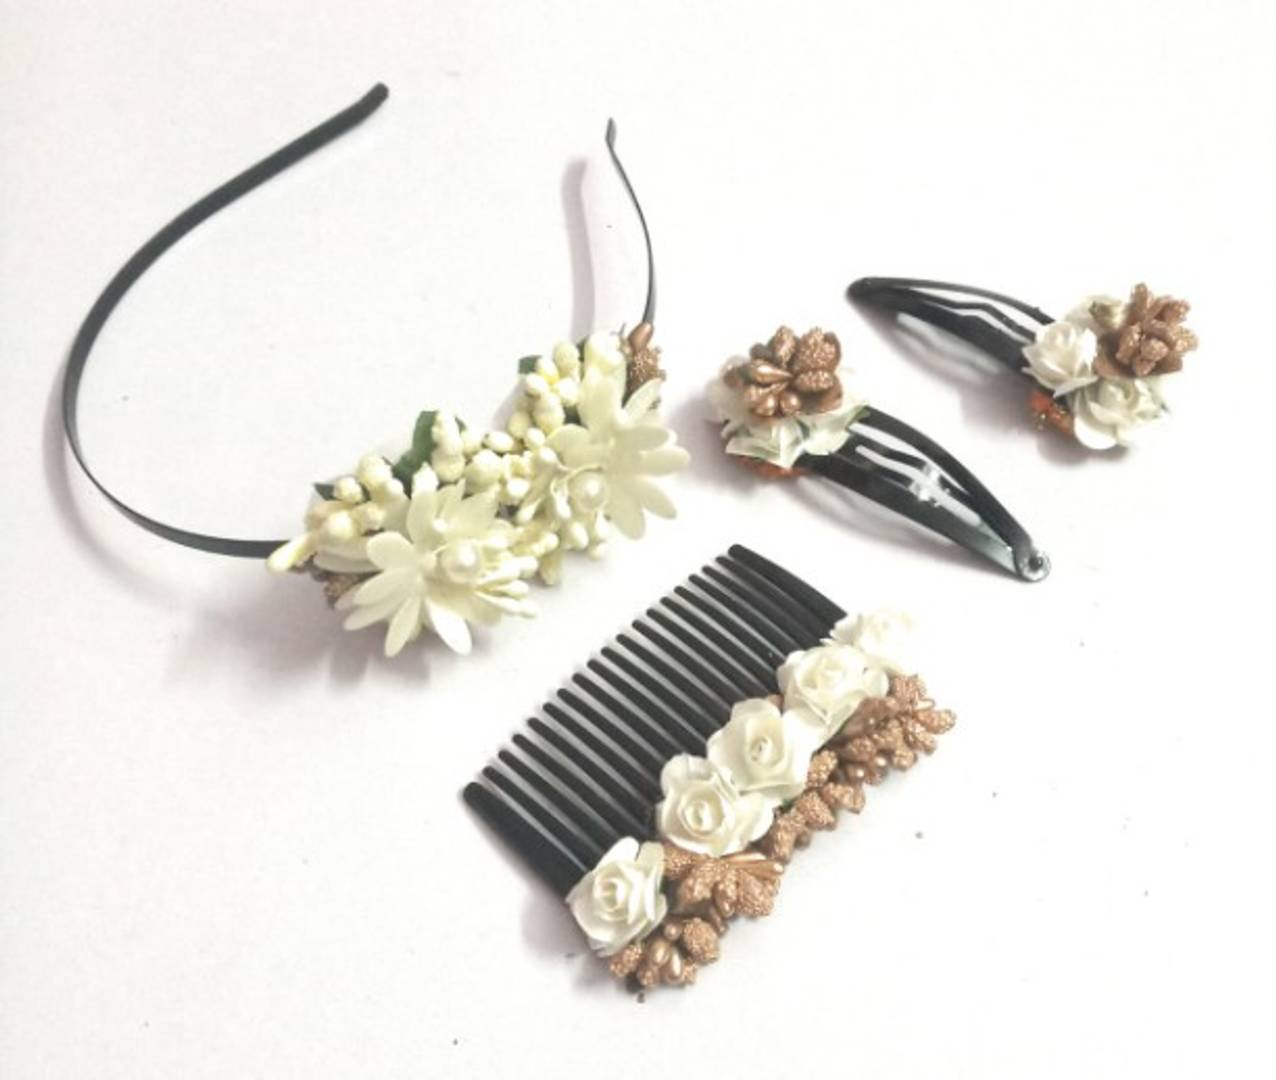 Homemade Floral Hair Accessories